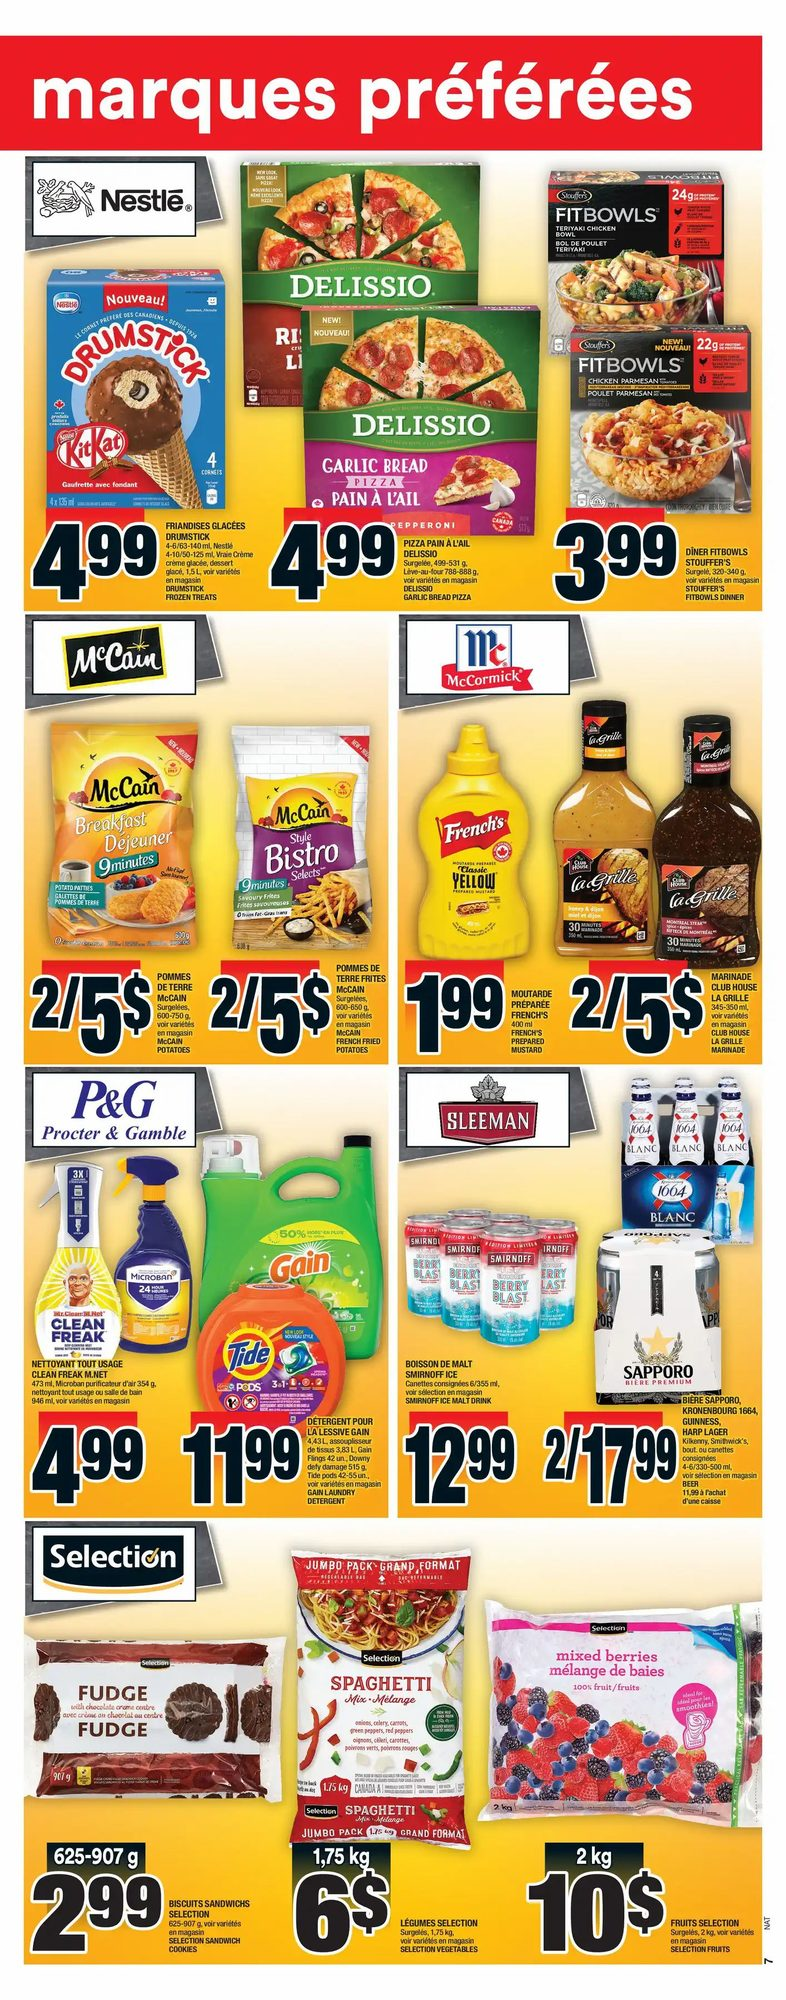 Super C - Weekly Flyer Specials - Page 10